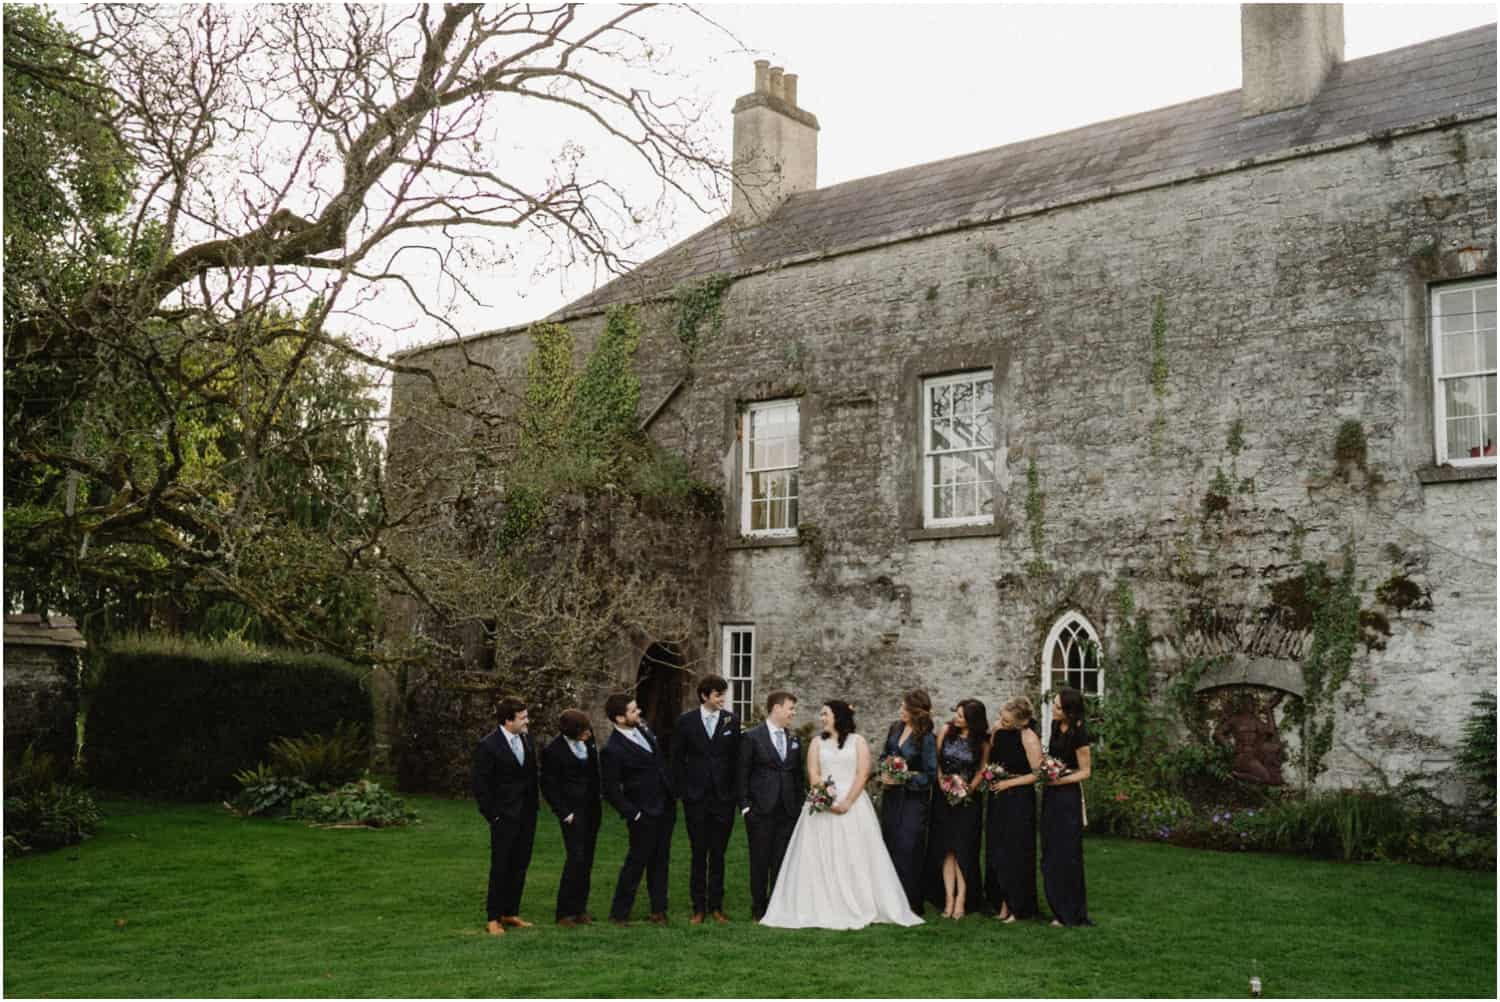 A bridal party stand near an old building at a Durhamstown Castle wedding